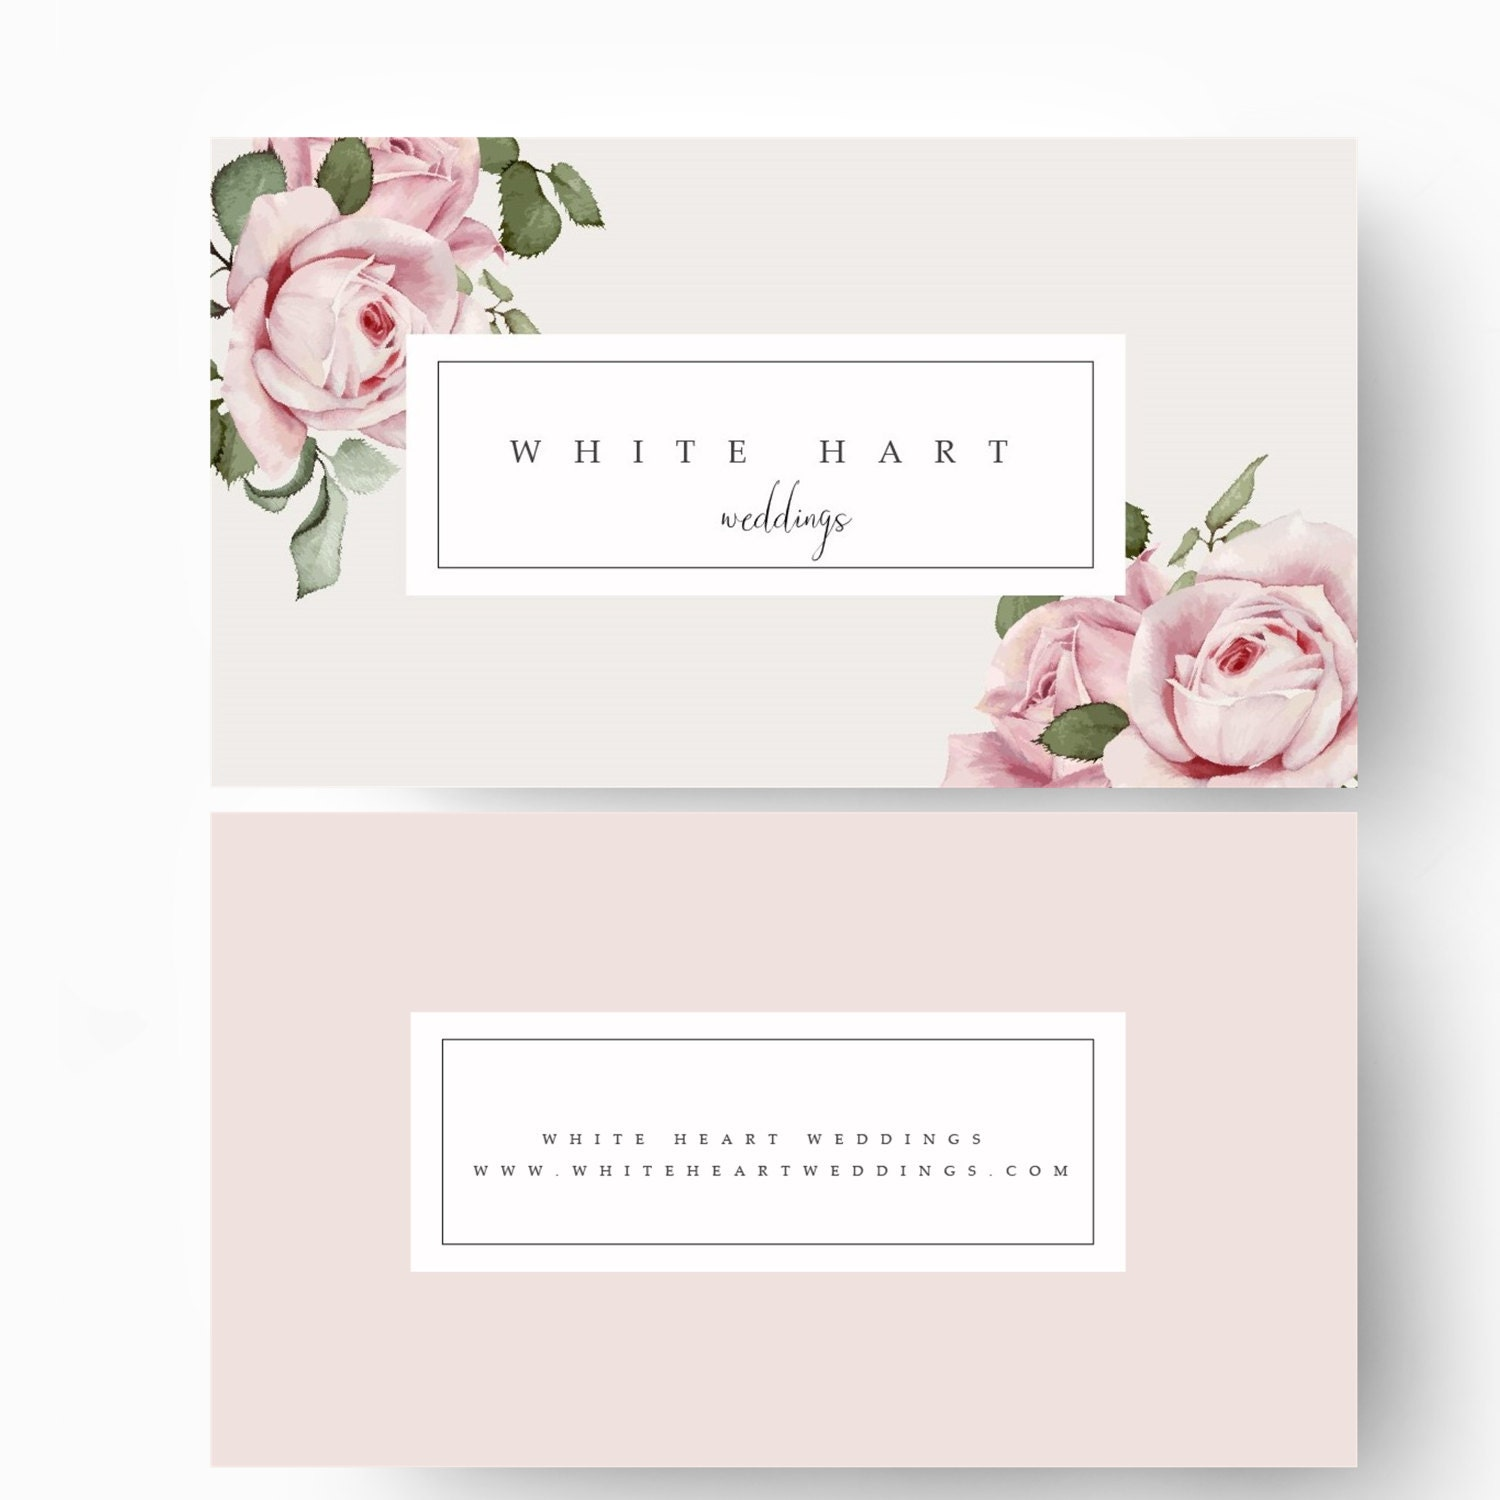 business card template modern business card design flower